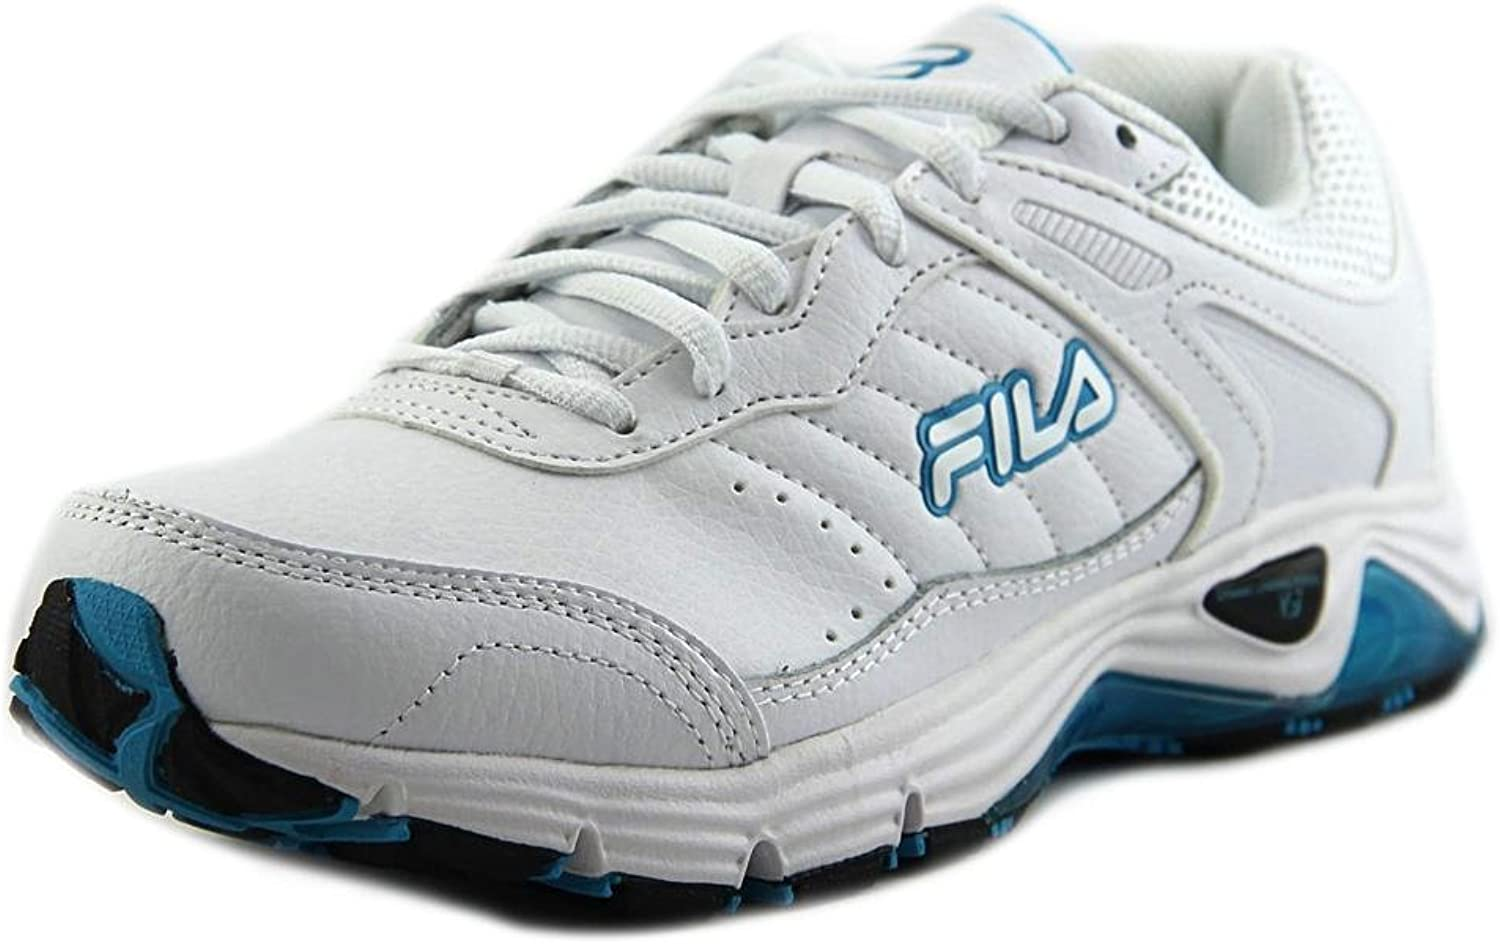 Fila Women's Memory Cool Sport Ankle-High Running shoes